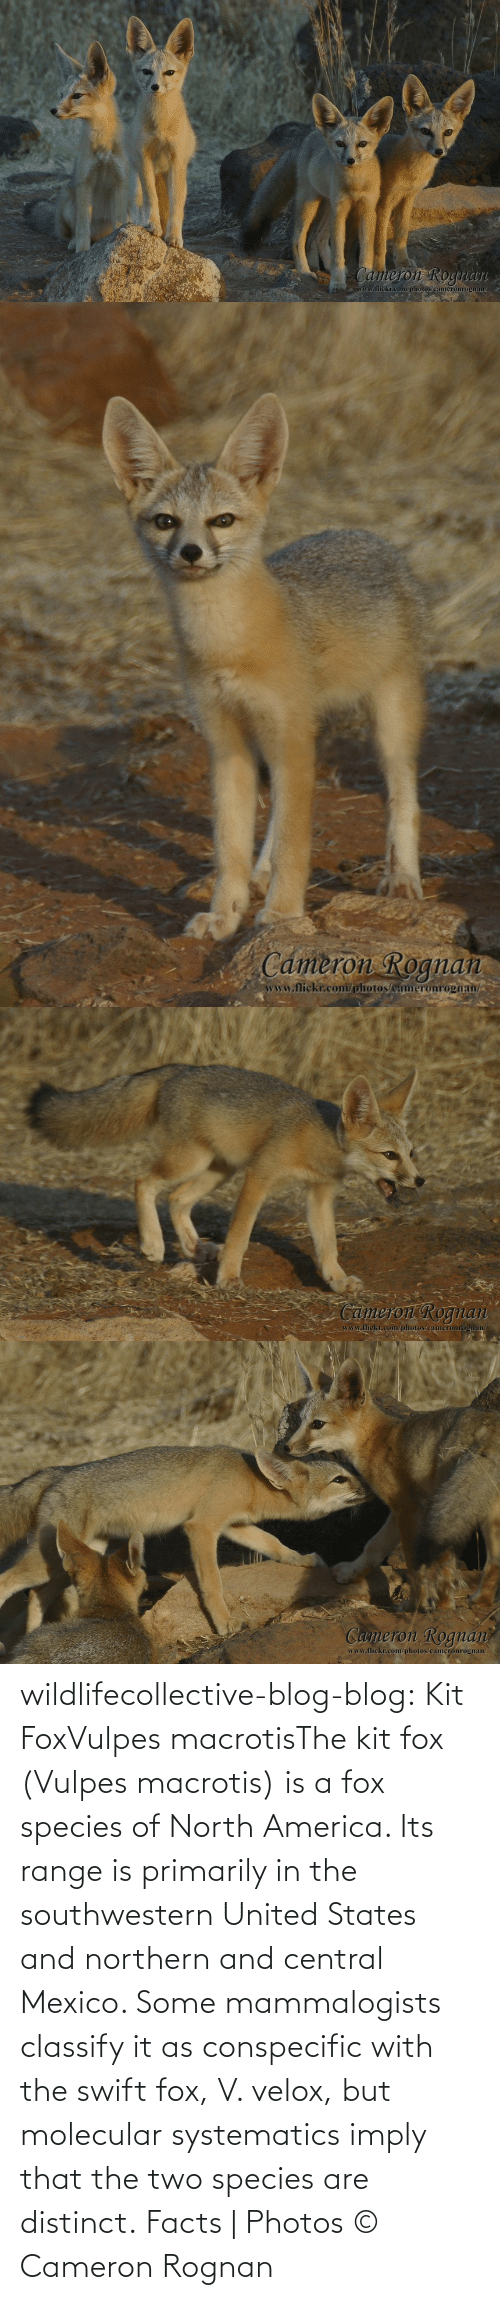 Northern: wildlifecollective-blog-blog:  Kit FoxVulpes macrotisThe kit fox (Vulpes macrotis) is a fox species of North America. Its range is primarily in the southwestern United States and northern and central Mexico. Some mammalogists classify it as conspecific with the swift fox, V. velox, but molecular systematics imply that the two species are distinct. Facts | Photos © Cameron Rognan